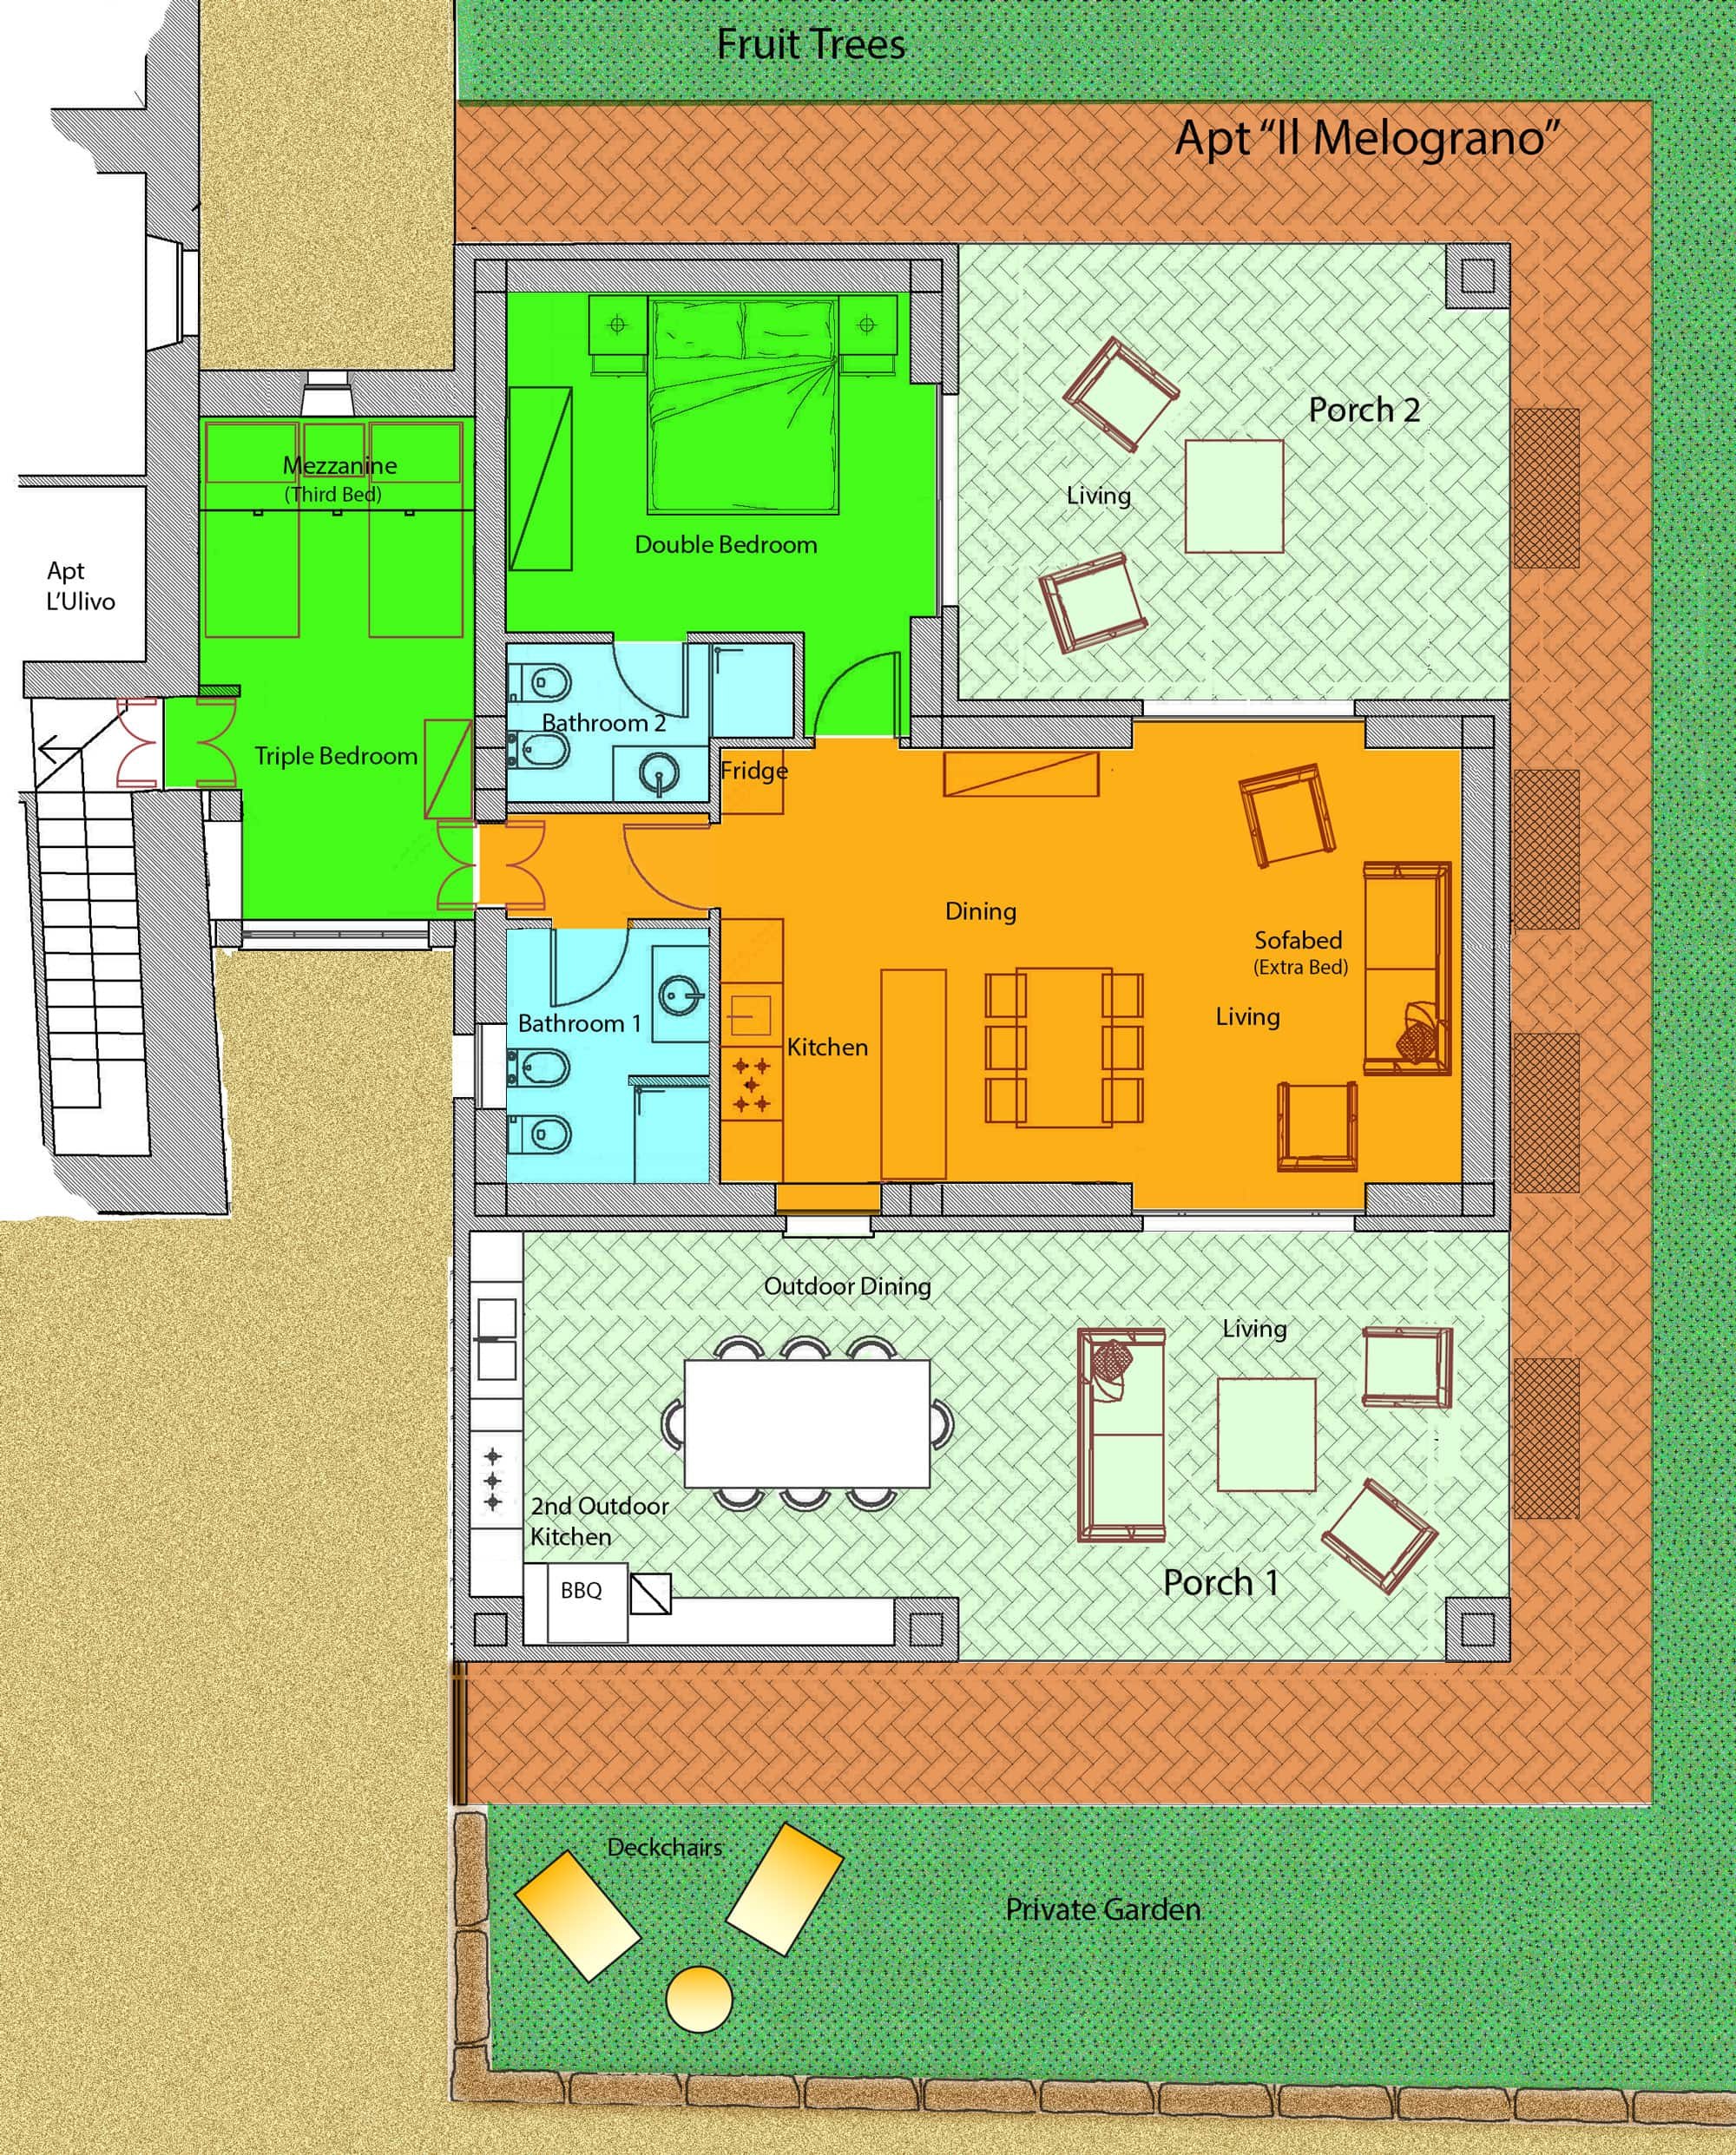 Layout apt 4 Il Melograno